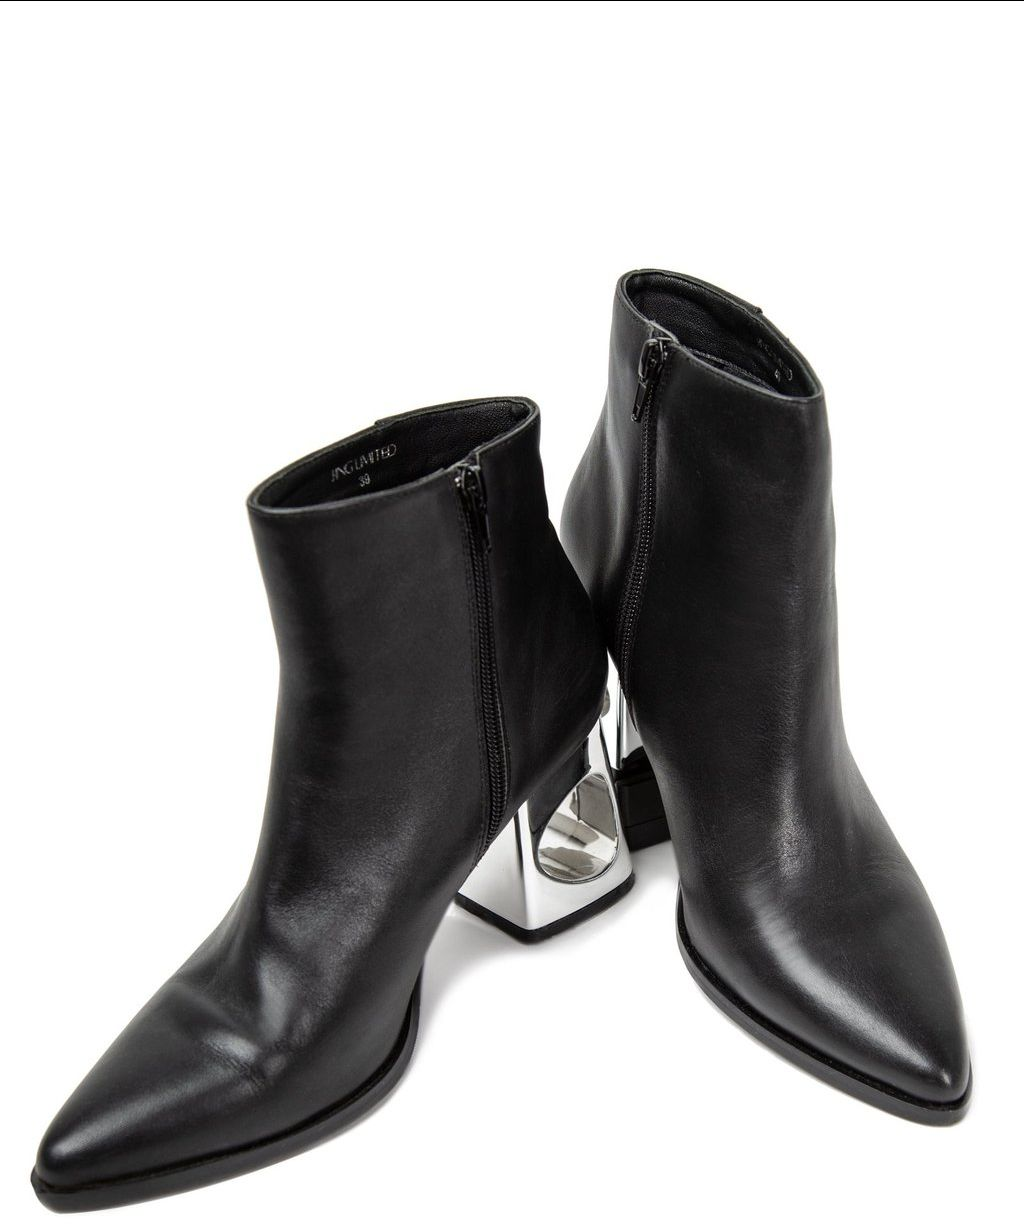 Black Patricia Booties with Metal Heels